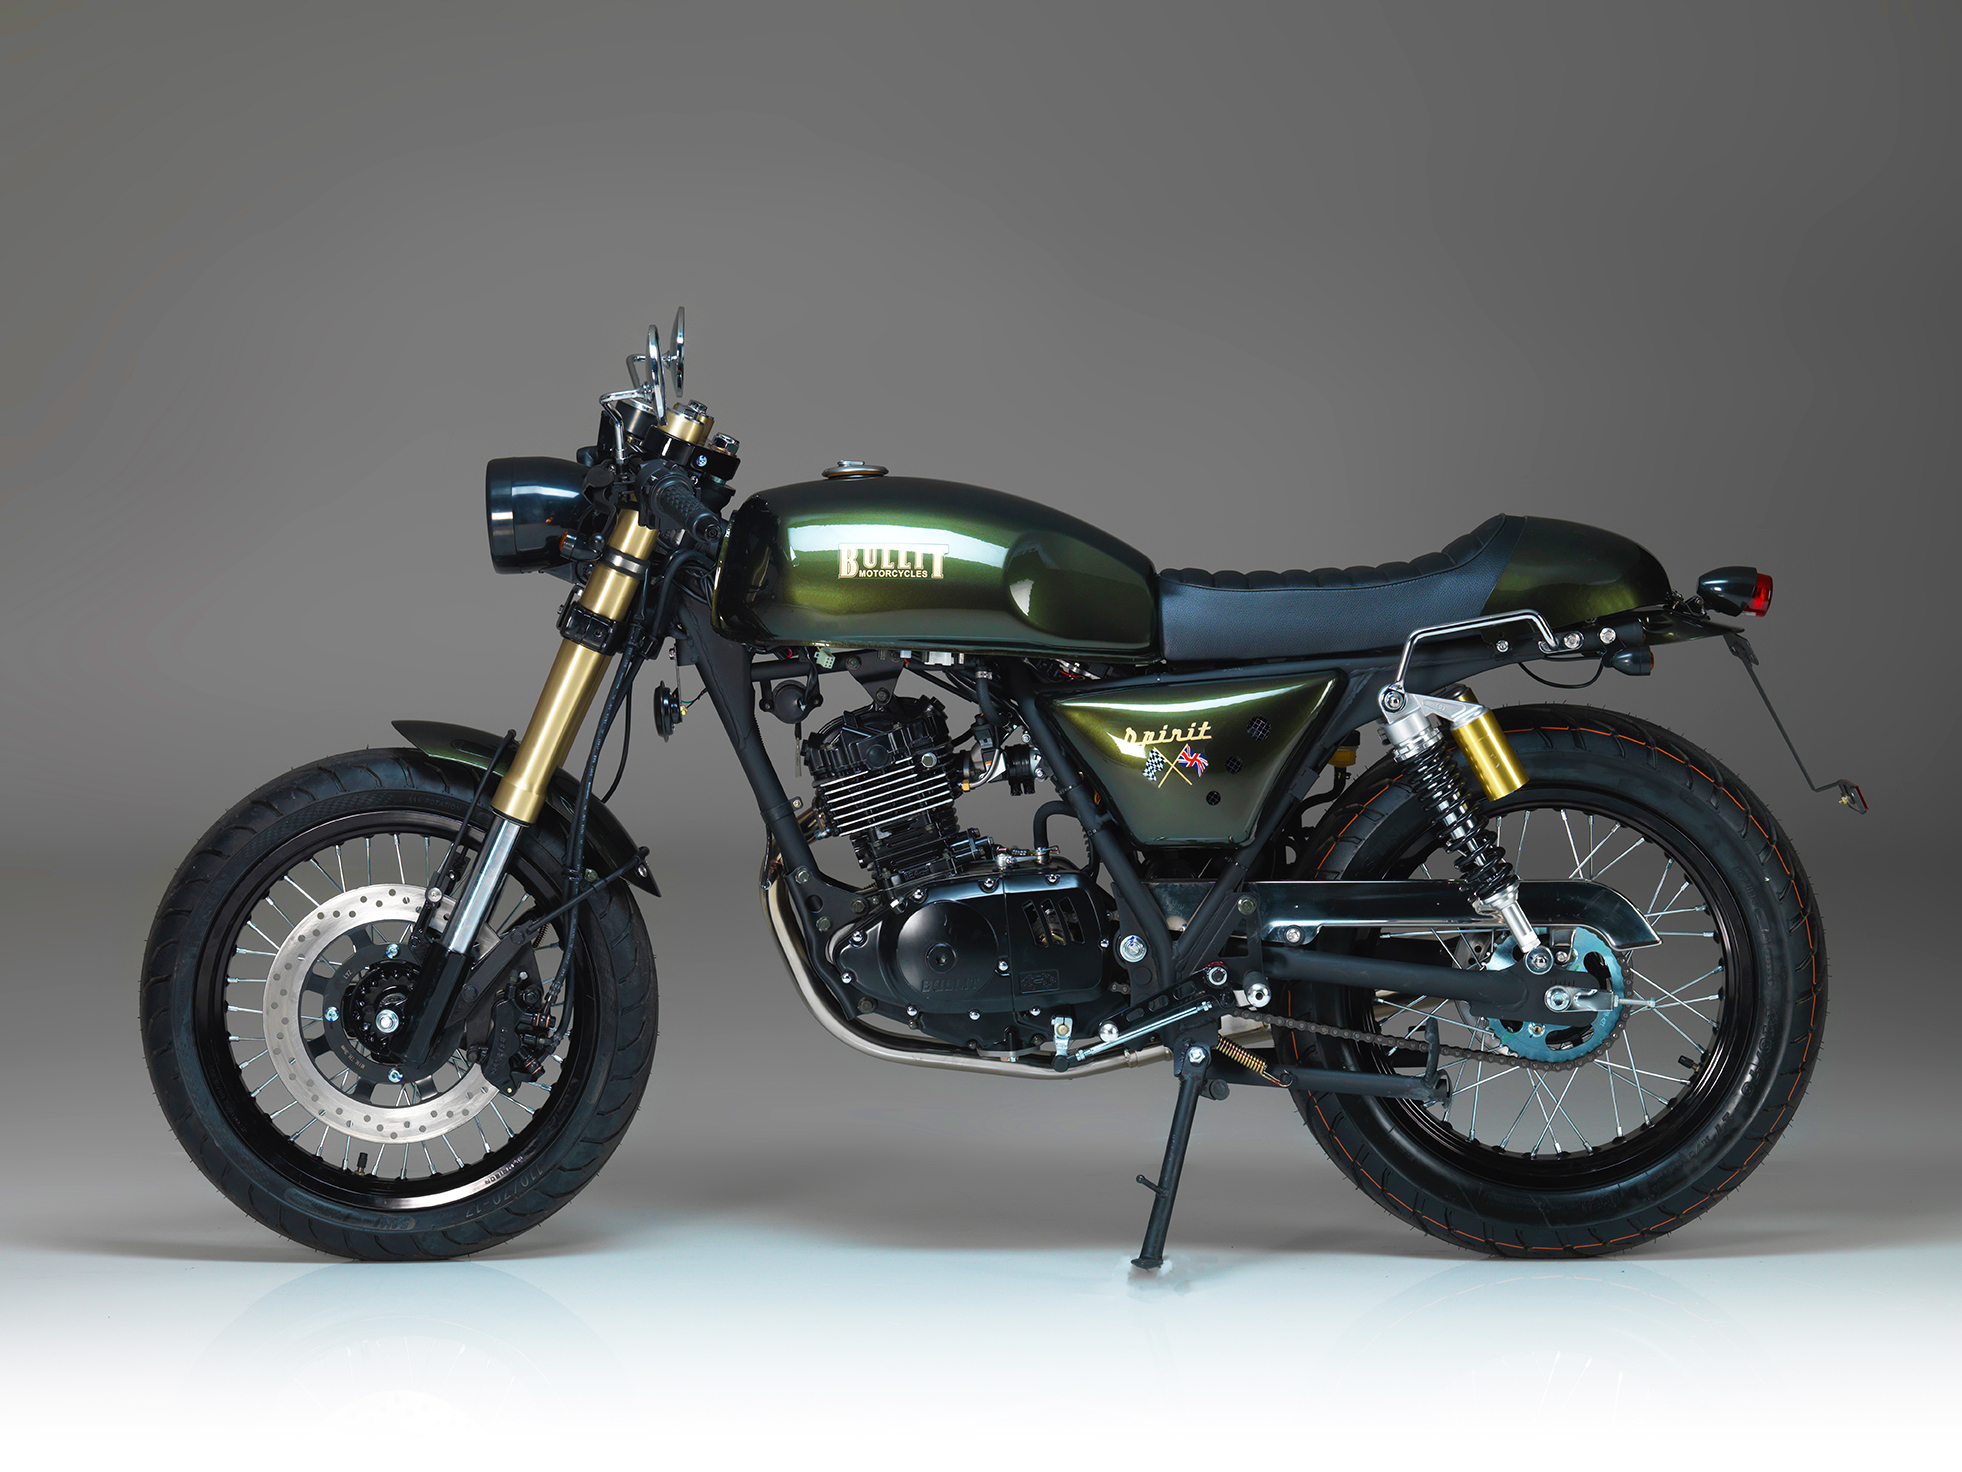 Cc Cafe Racer Motorcycles